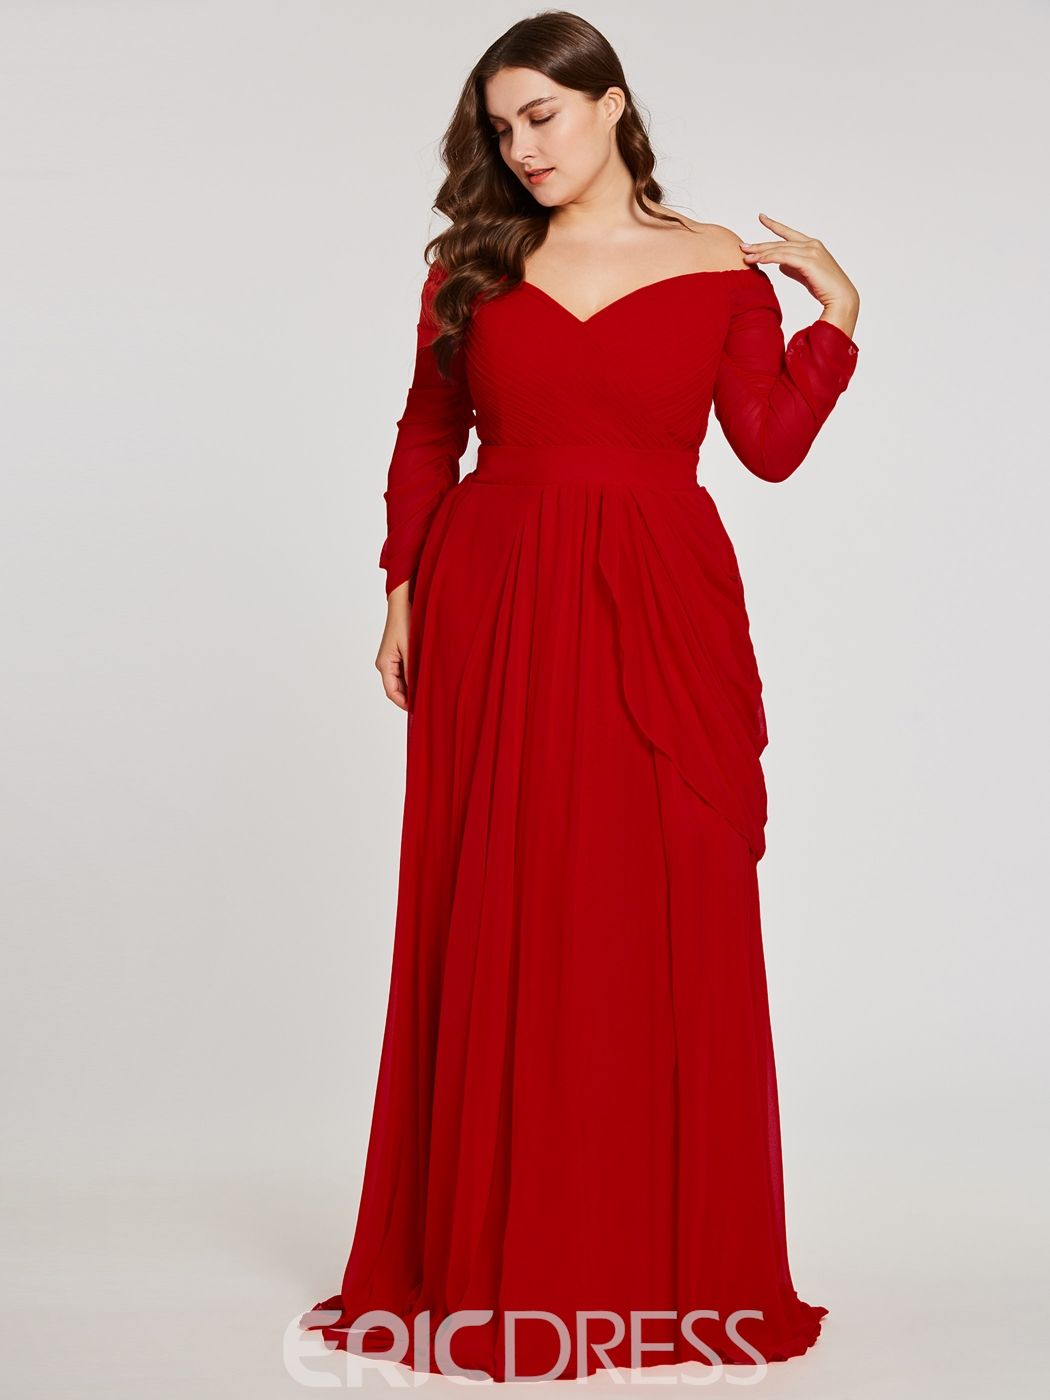 Plus Size OfftheShoulder Long Sleeves Evening Dress Long sleeve